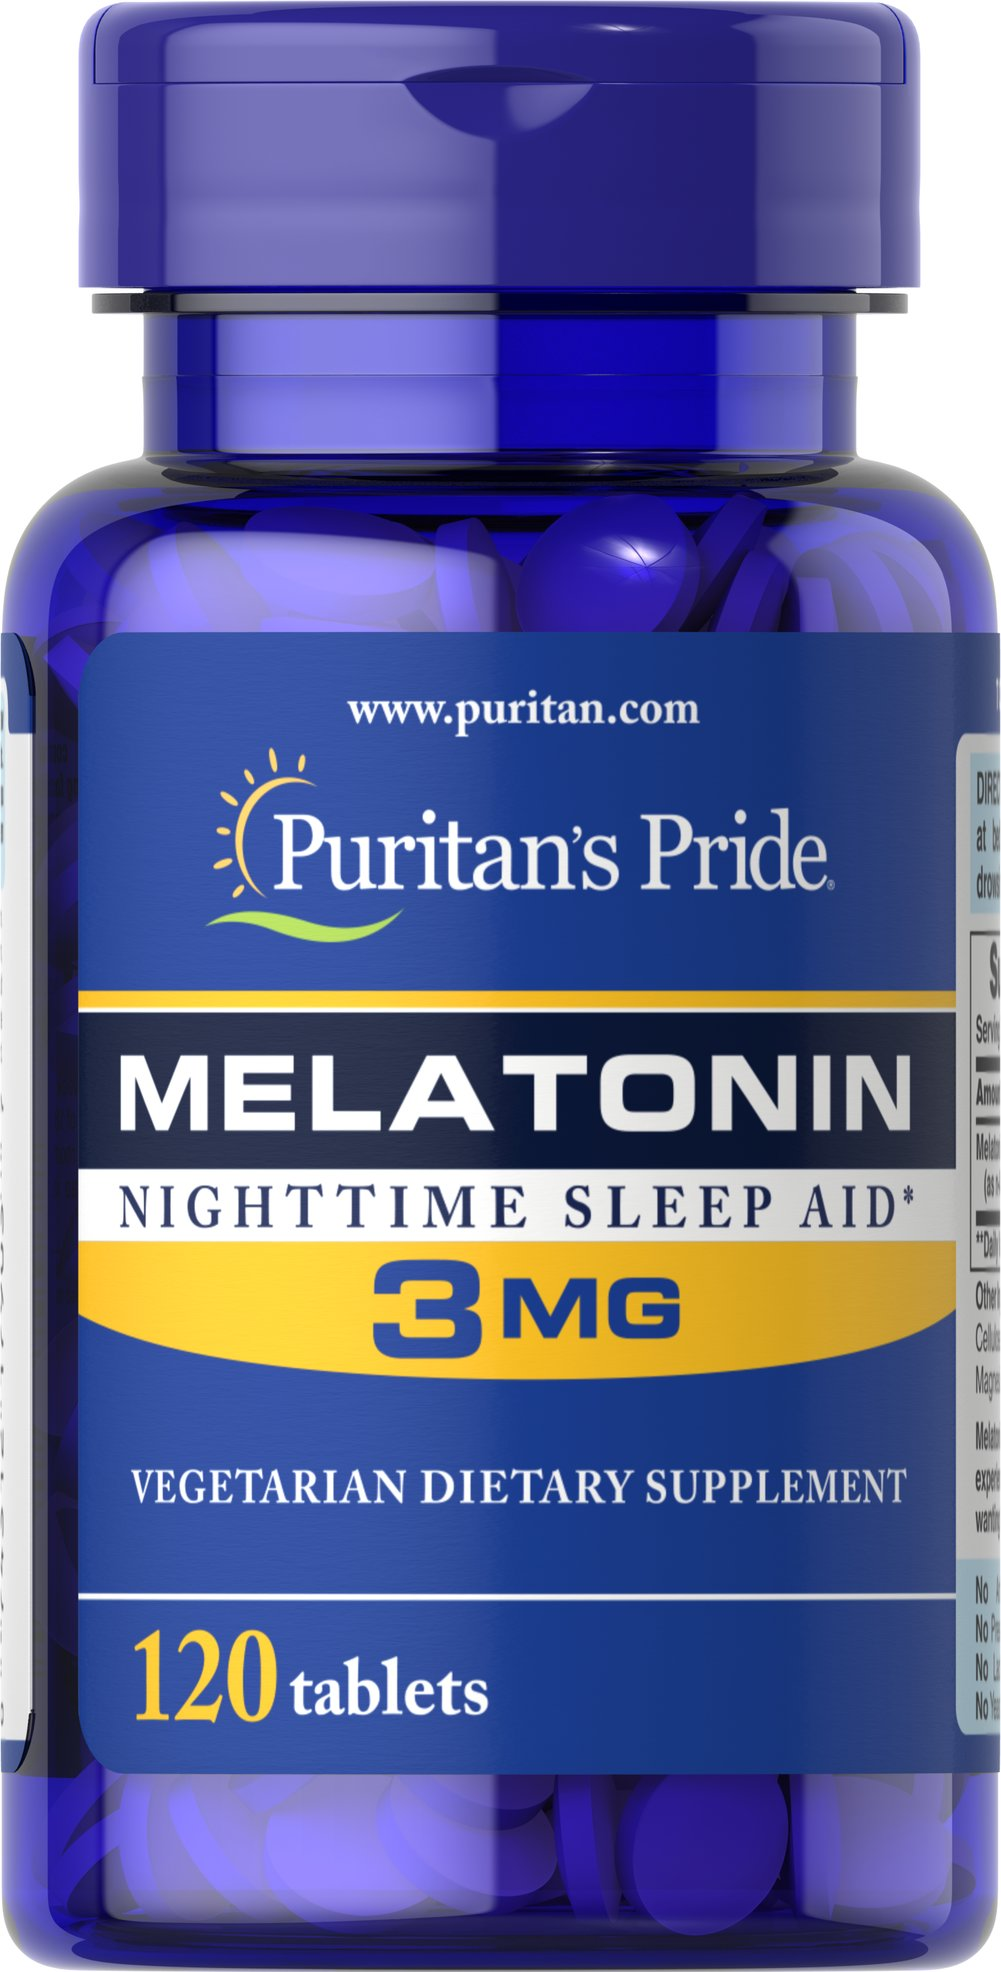 Melatonin 3 mg <p>Sometimes it's hard to unwind after a long day. That's when it's time for Melatonin, a hormone naturally produced in the body that is closely involved in the natural sleep cycle.** It's a terrific choice if you experience occasional sleeplessness or jet lag, or if you want to improve your quality of rest.**</p> 120 Tablets 3 mg $5.99